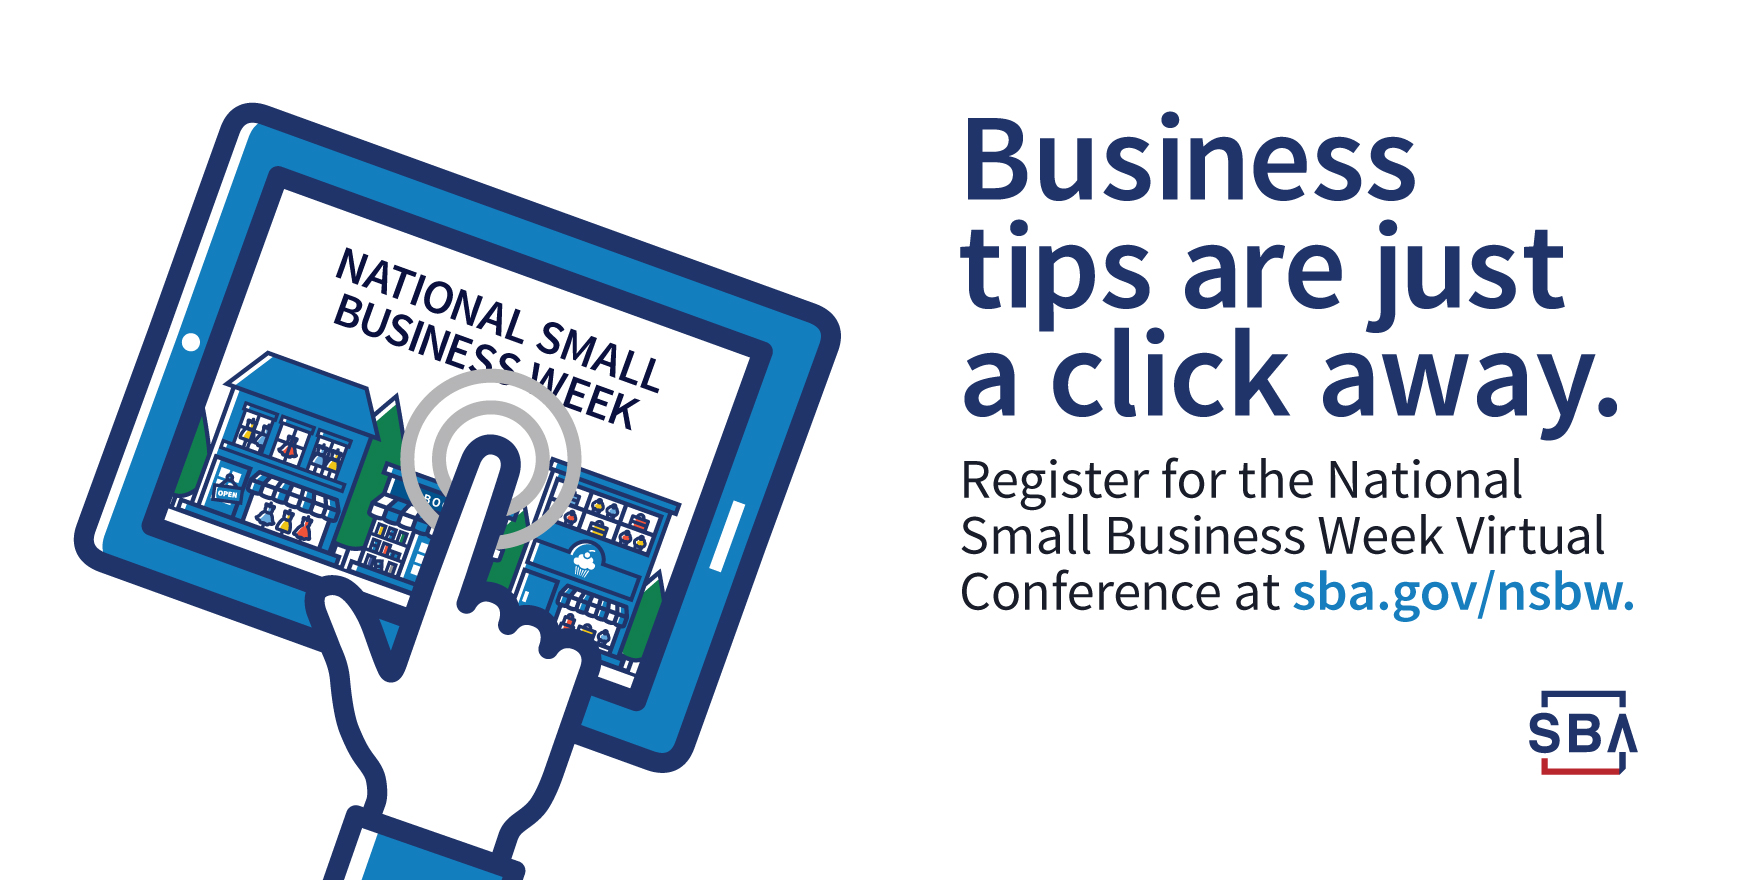 Follow along with National Small Business Week through the SBA's Virtual Conference